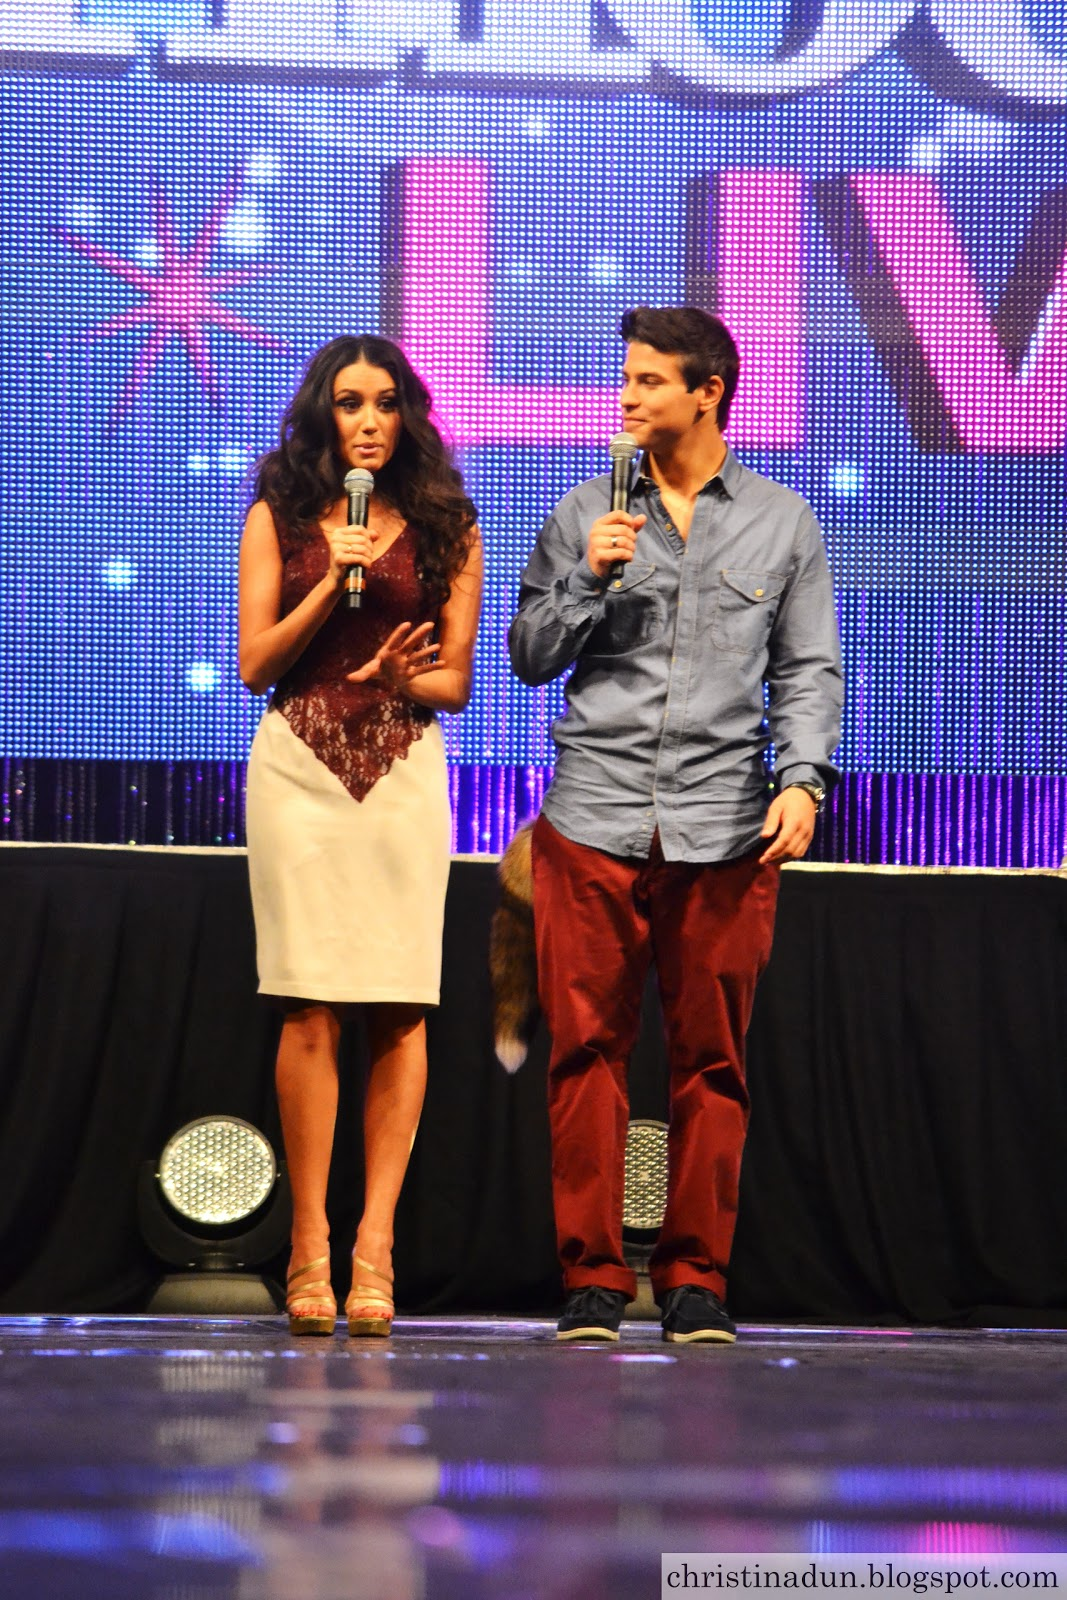 Co Hosts Alicia Josipovic & Luke Bilyk